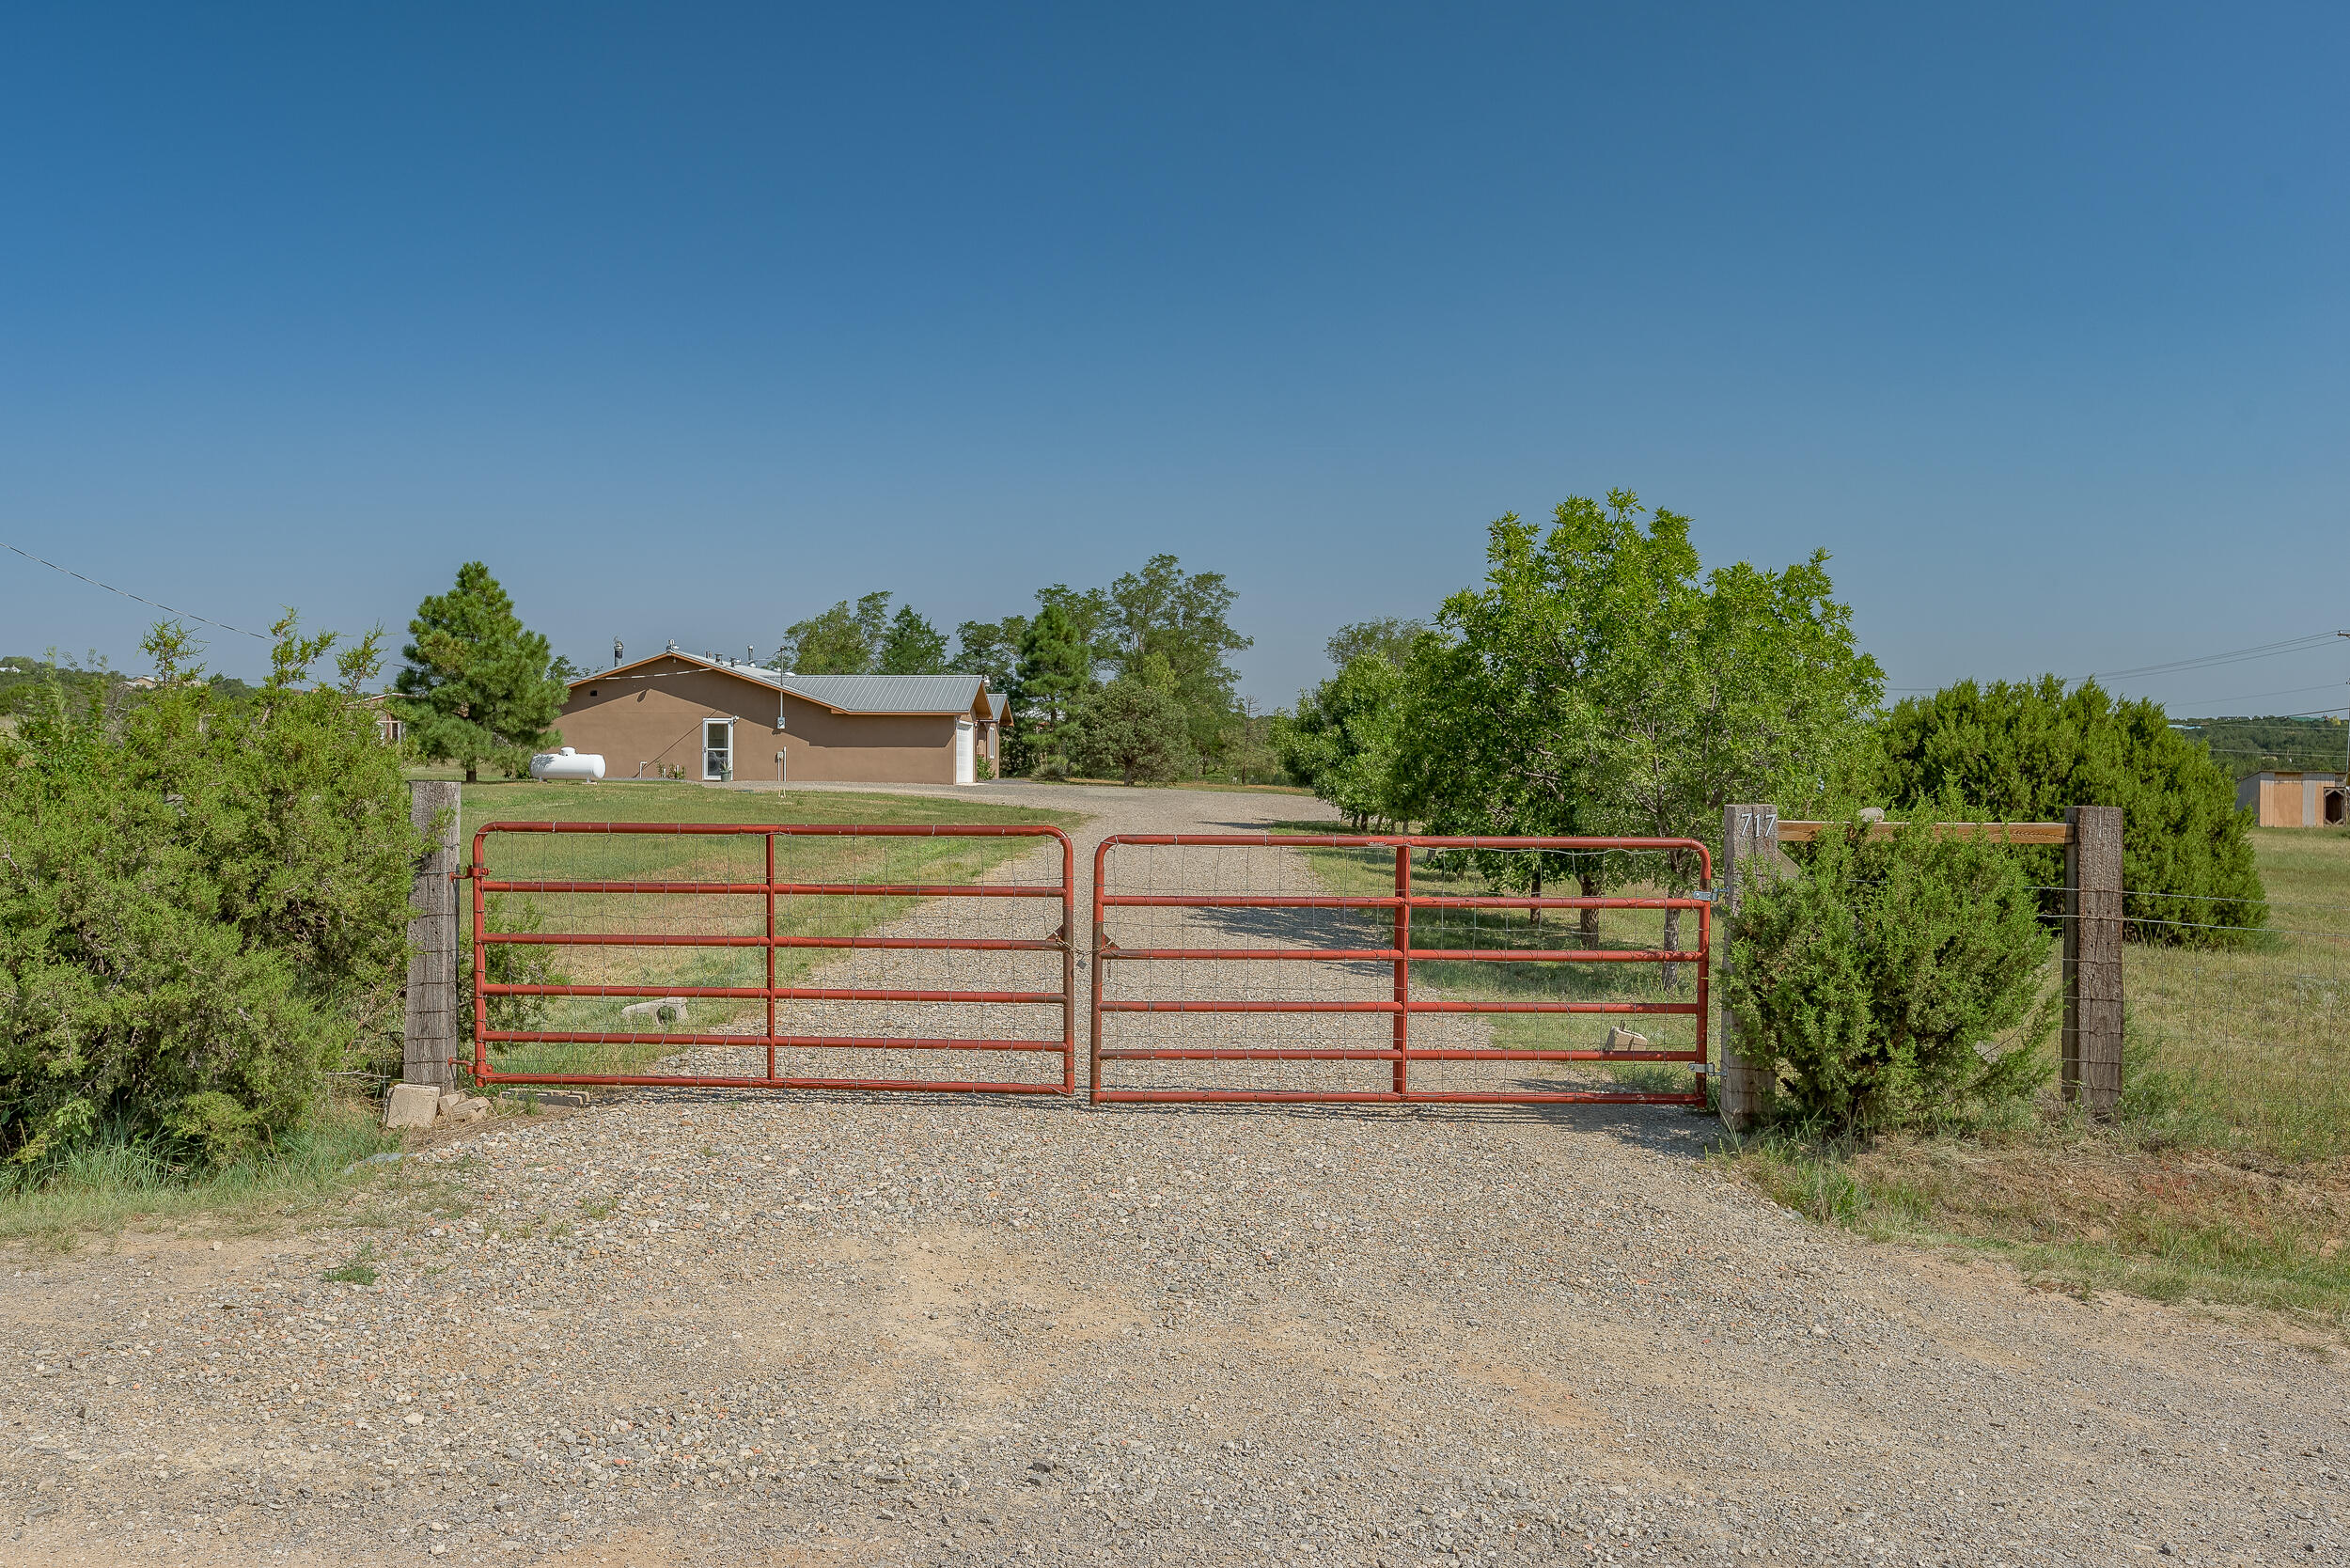 This Fabulous Home Sits On 2.4 Fully Fenced Acres And Is Absolutely Spotless And Move In Ready! Less Than 15 Minutes From Tramway And Central And Yet Country Living At Its Finest! This Home Has Been Completely Updated With All New Kitchen & Bathroom Cabinetry & Granite Counter Tops. New Tile, Carpet & Fresh Paint Throughout Entire Home. New Synthetic Stucco In 2020, Pella Windows In 2019, Owned Propane Tank, Refrigerated Air, Large Woodstove And Possible 4th Bedroom Or Office. Chicken Coop And Additional Sheds Fenced In And Ready For Potential Hobby Farm. This Property Has So Much To Offer. Don't Let This One Slip Away. Schedule Your Private Showing Today! This Is A Great Place To Call Home!